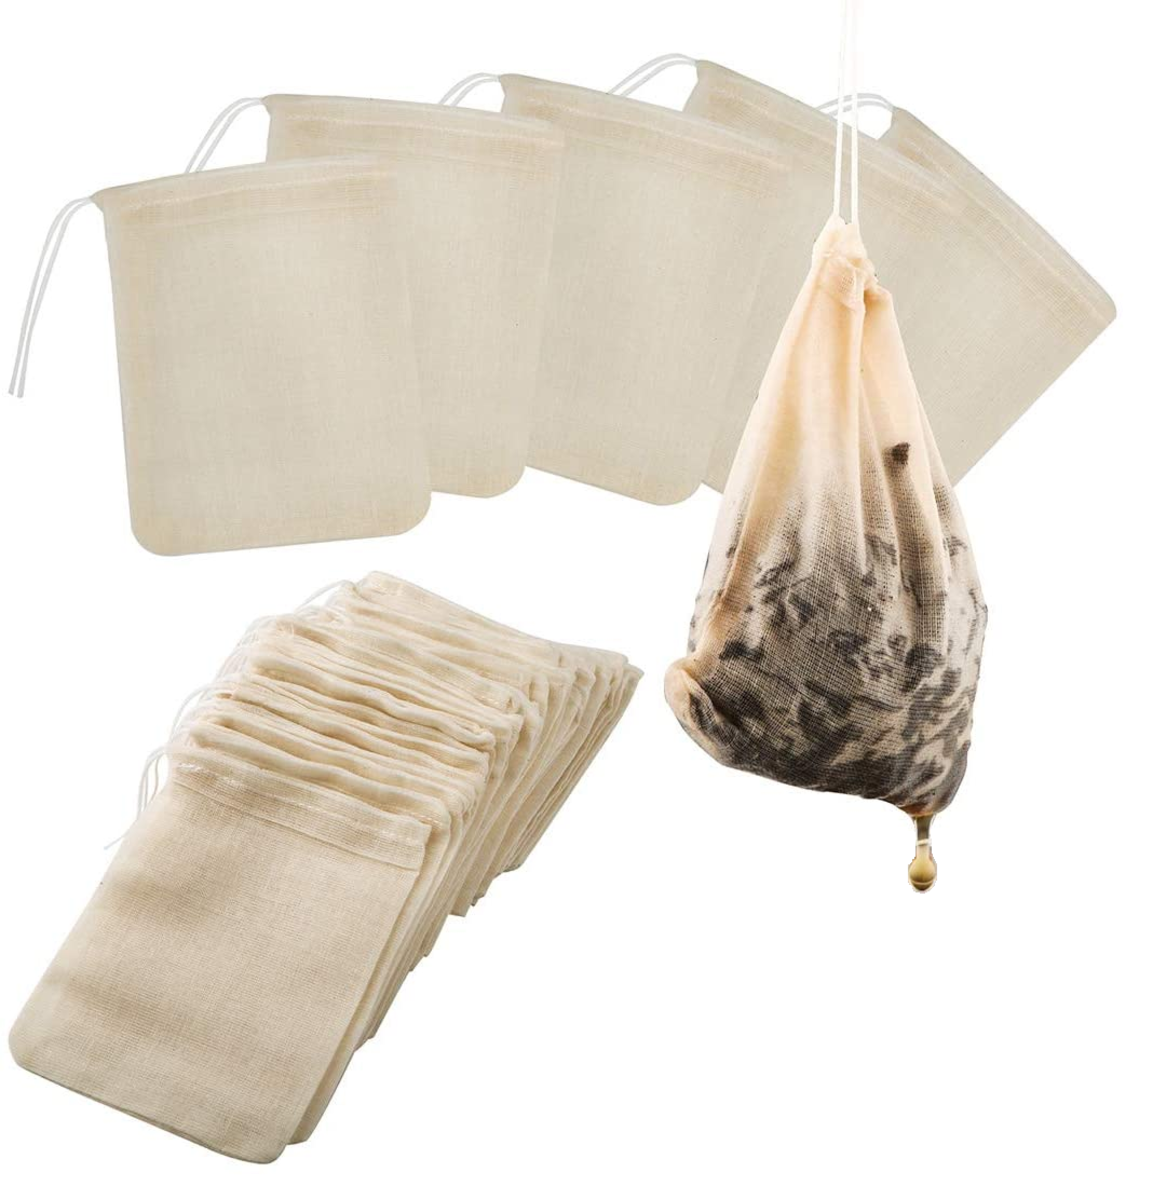 Cloth Teabags or another pouch for easy straining